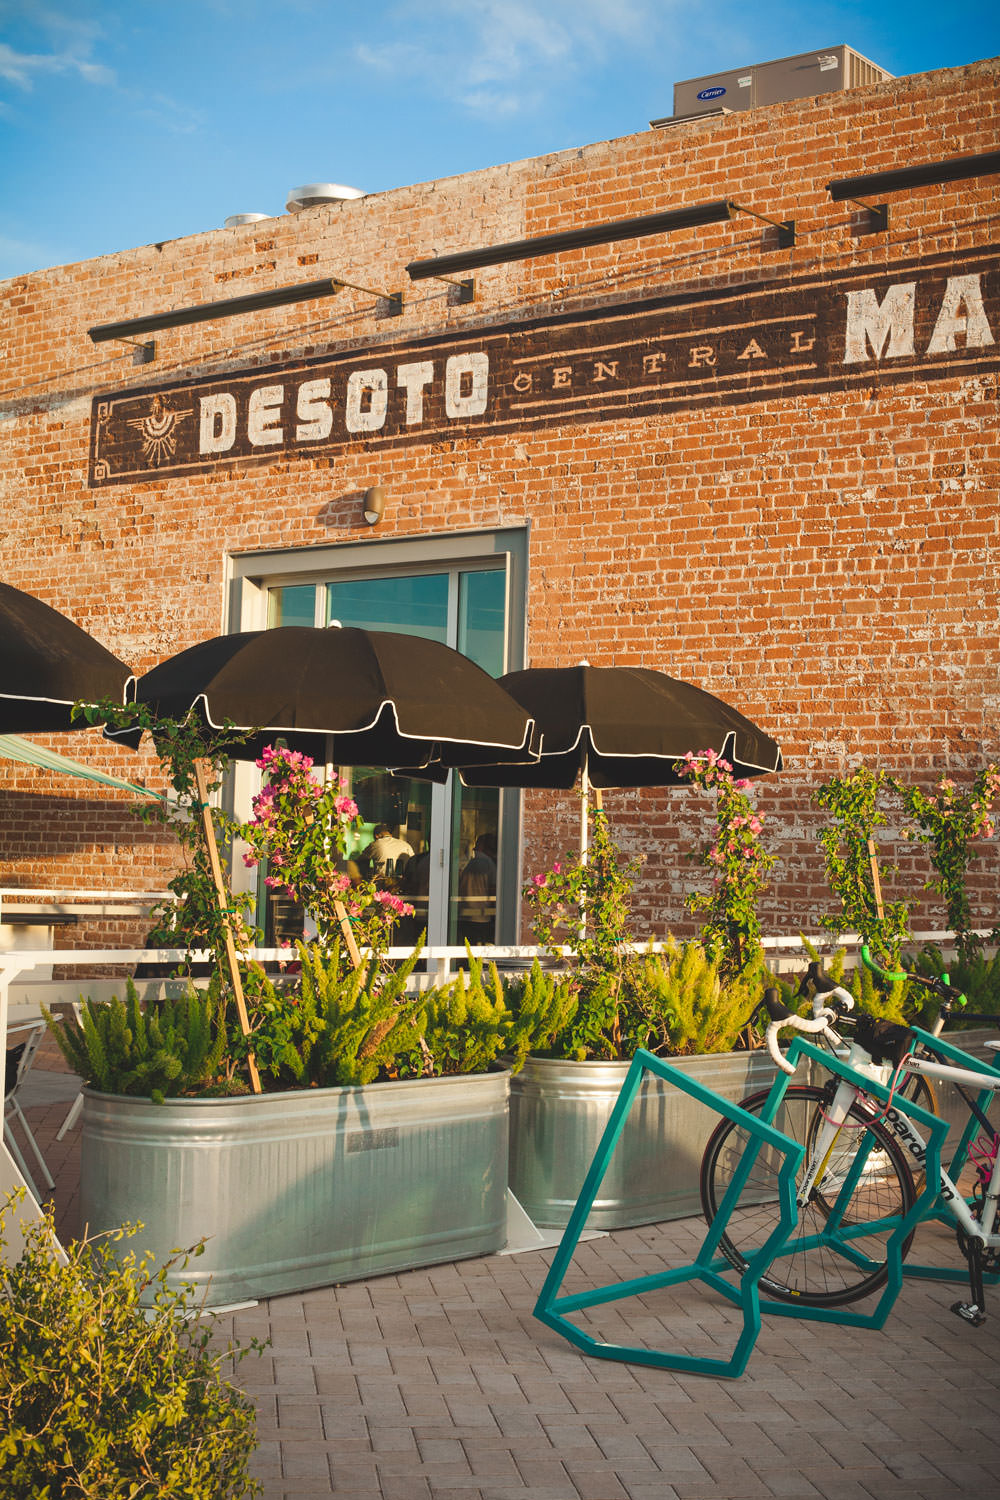 DeSoto Central Market, Downtown Phoenix